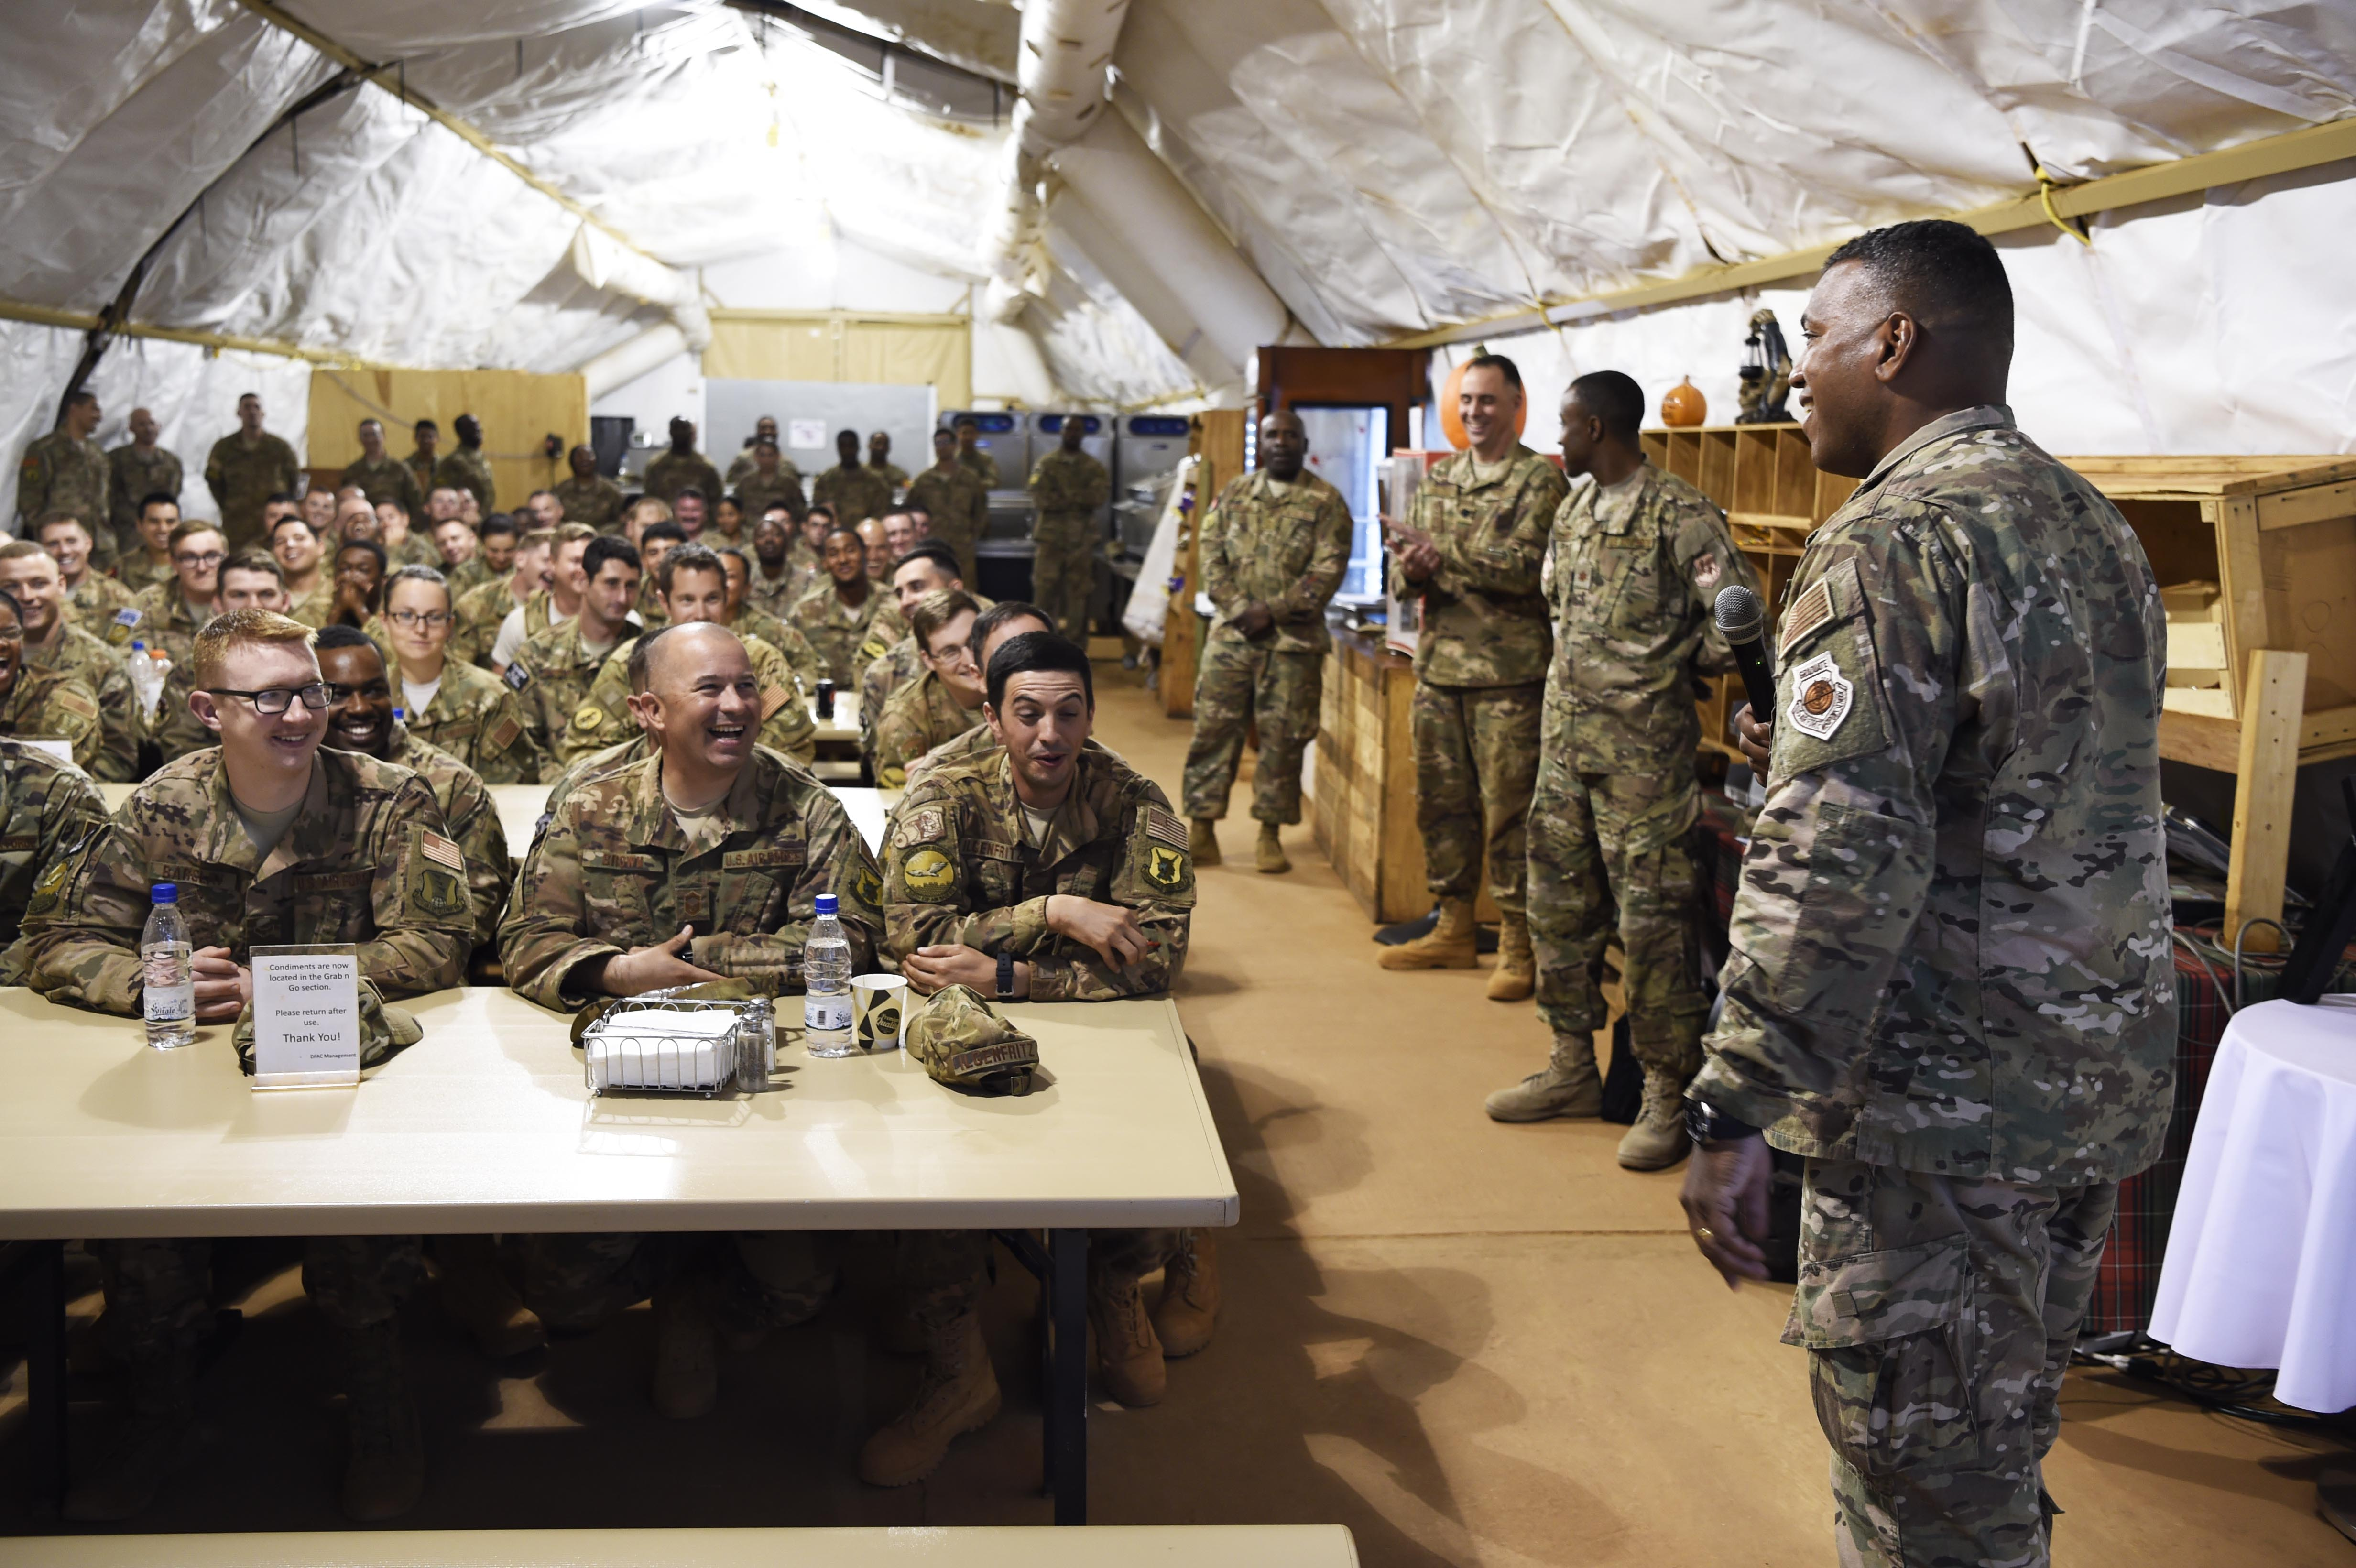 U. S. Air Force Lt. Gen. Richard Clark, 3rd Air Force/17th Expeditionary AF commander, speaks to 409th Air Expeditionary Group Airmen during an all-call, at Nigerien Air Base 101, Niger, on Oct. 18, 2017. Clark visited Airmen from around the 435th Air Expeditionary Wing deployed throughout Africa to highlight the importance of their mission and get to know the troops better. (U.S. Air Force photo by Staff Sgt. Joshua R. M. Dewberry)